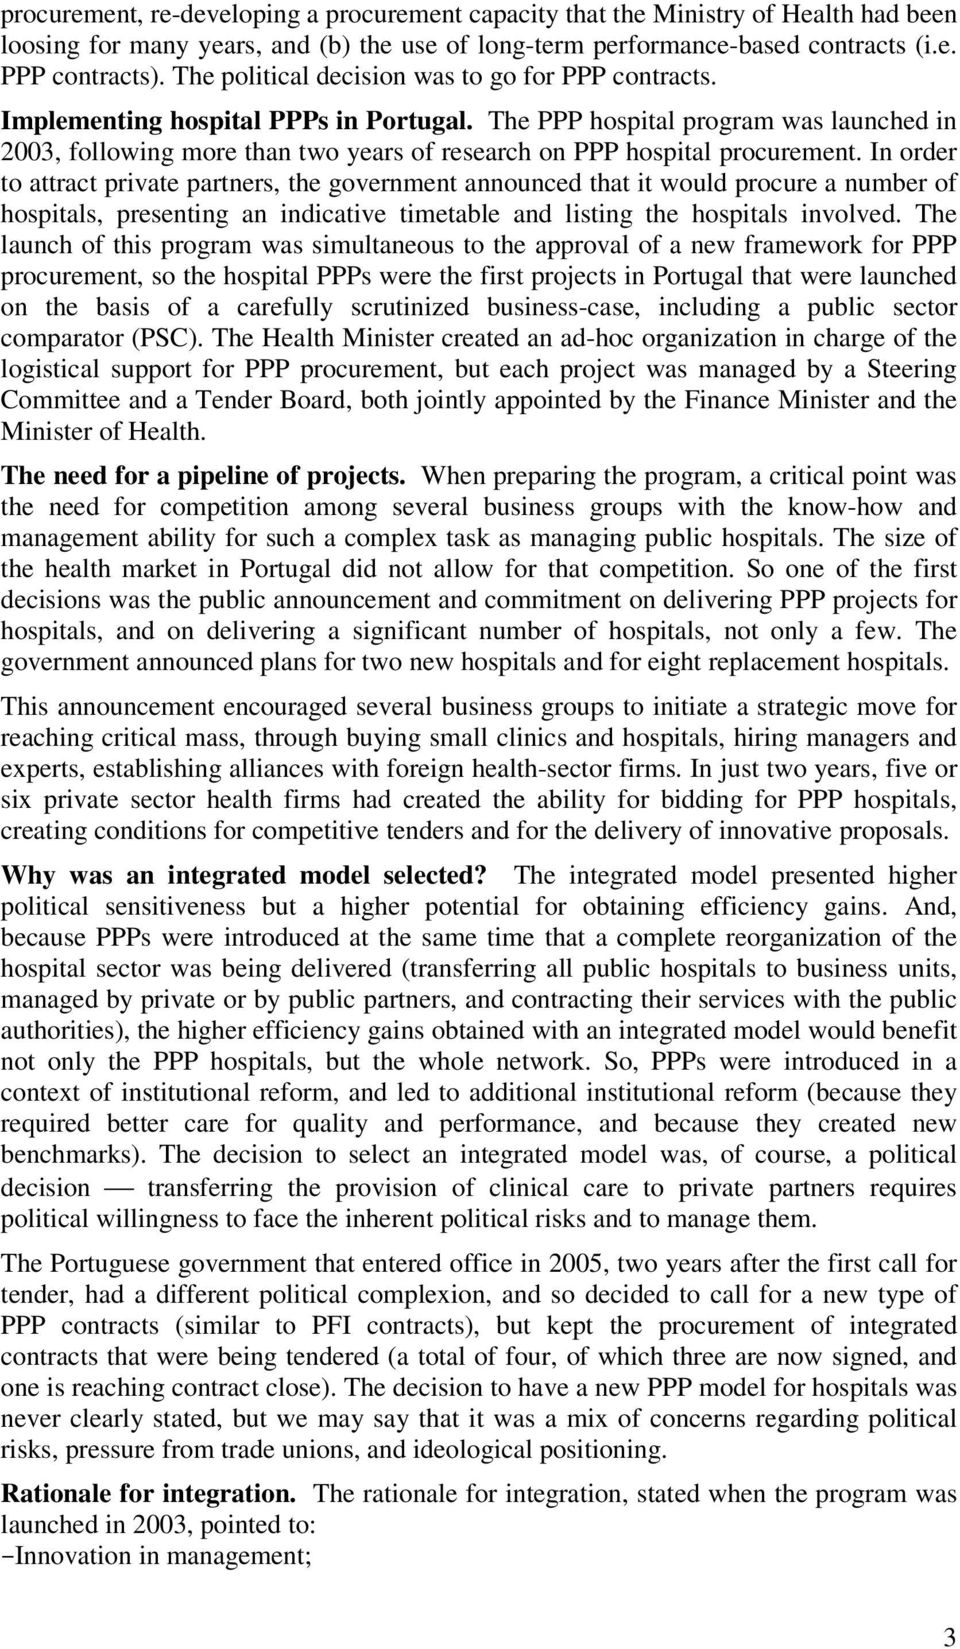 The PPP hospital program was launched in 2003, following more than two years of research on PPP hospital procurement.